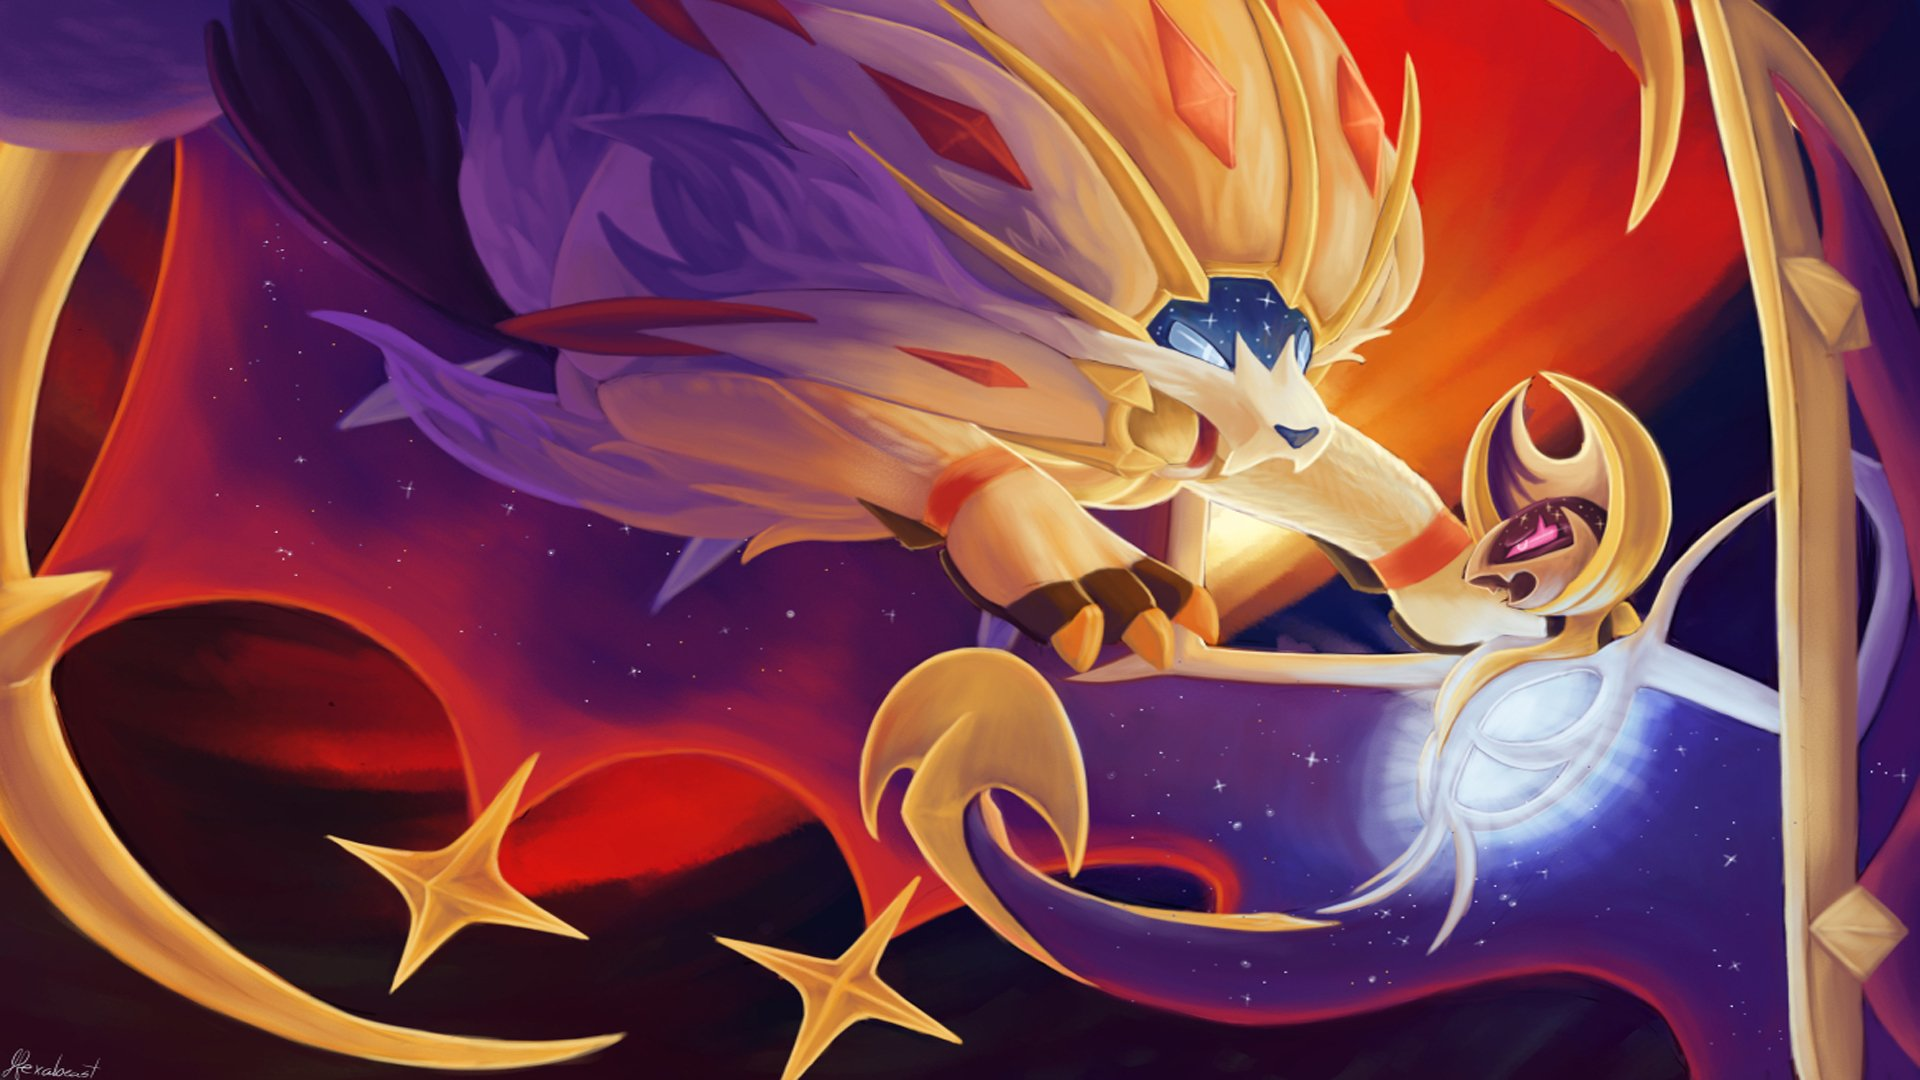 Solgaleo And Lunala Computer Wallpapers, Desktop